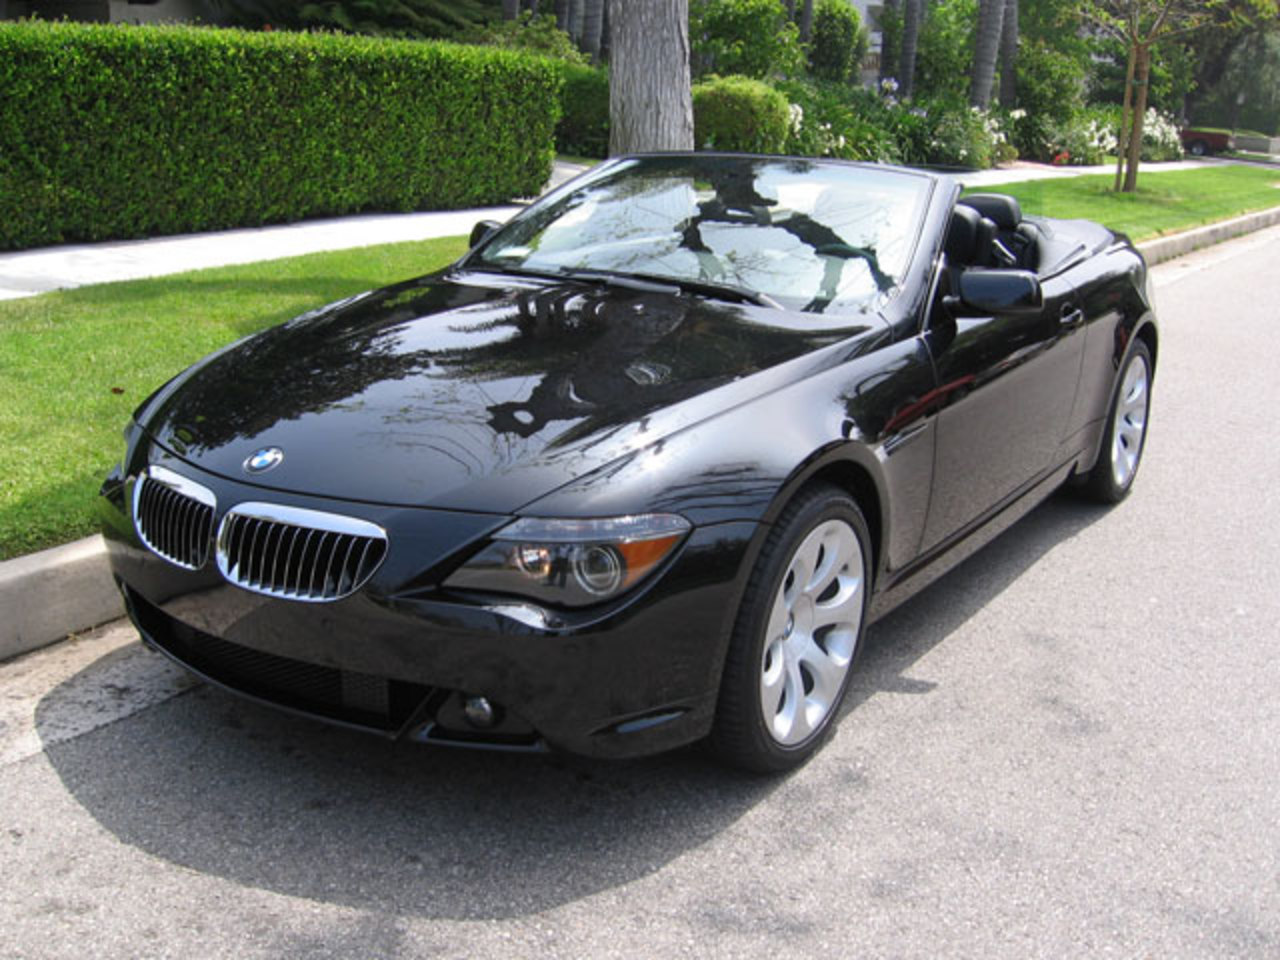 2006 BMW 650 650i Convertible picture · 0 pictures · 1 video · 5 reviews